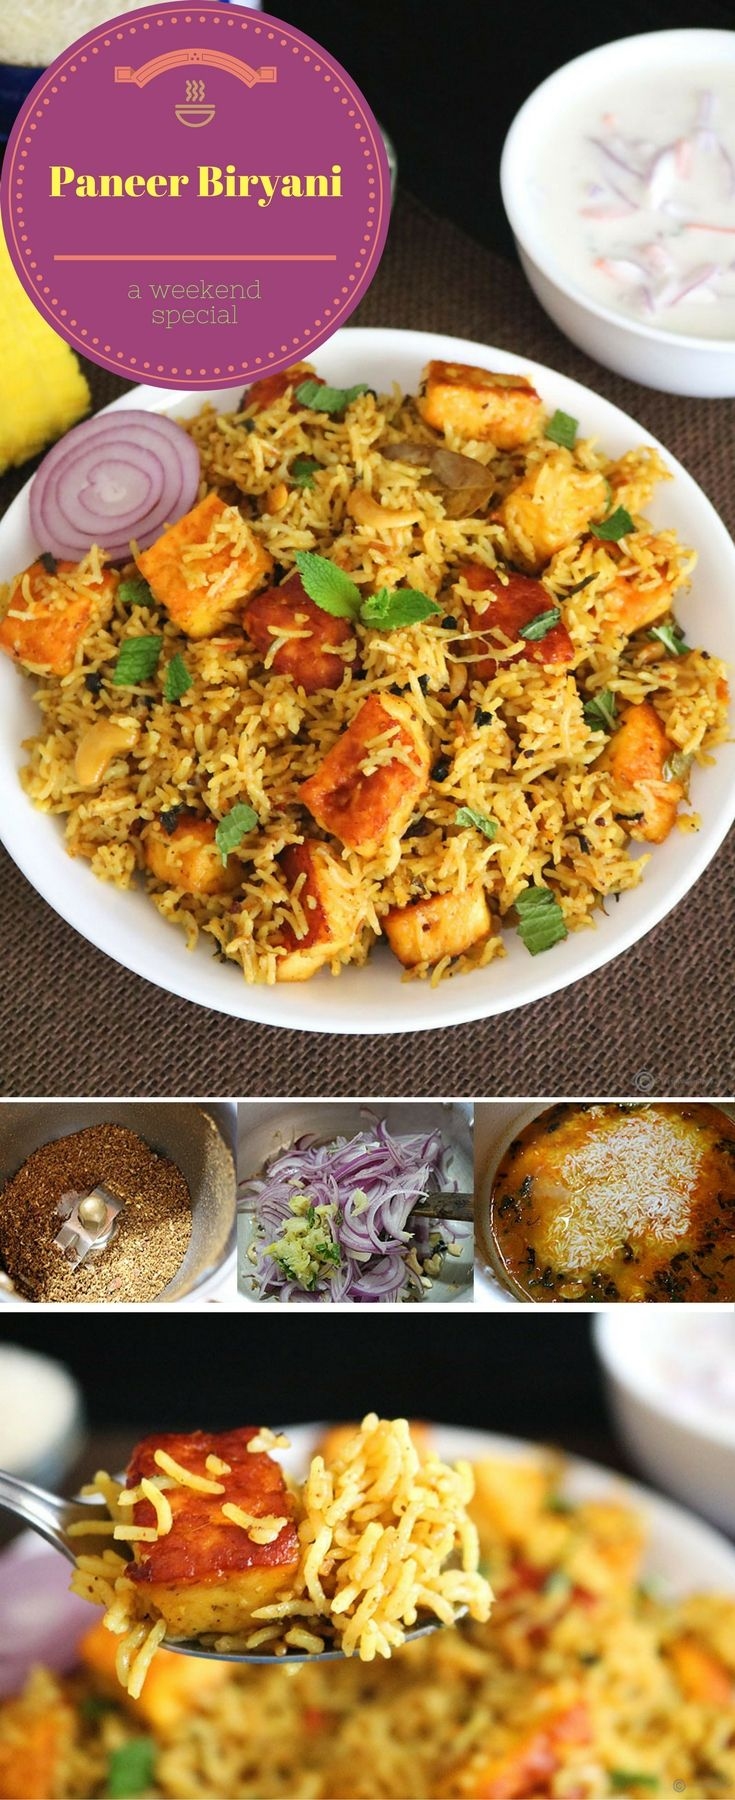 Paneer Biryani is a super delicious and aromatic Indian rice entree made using fragrant basmati rice, cubes of paneer (Indian cottage cheese) and spices. Perfect to make for the weekend.